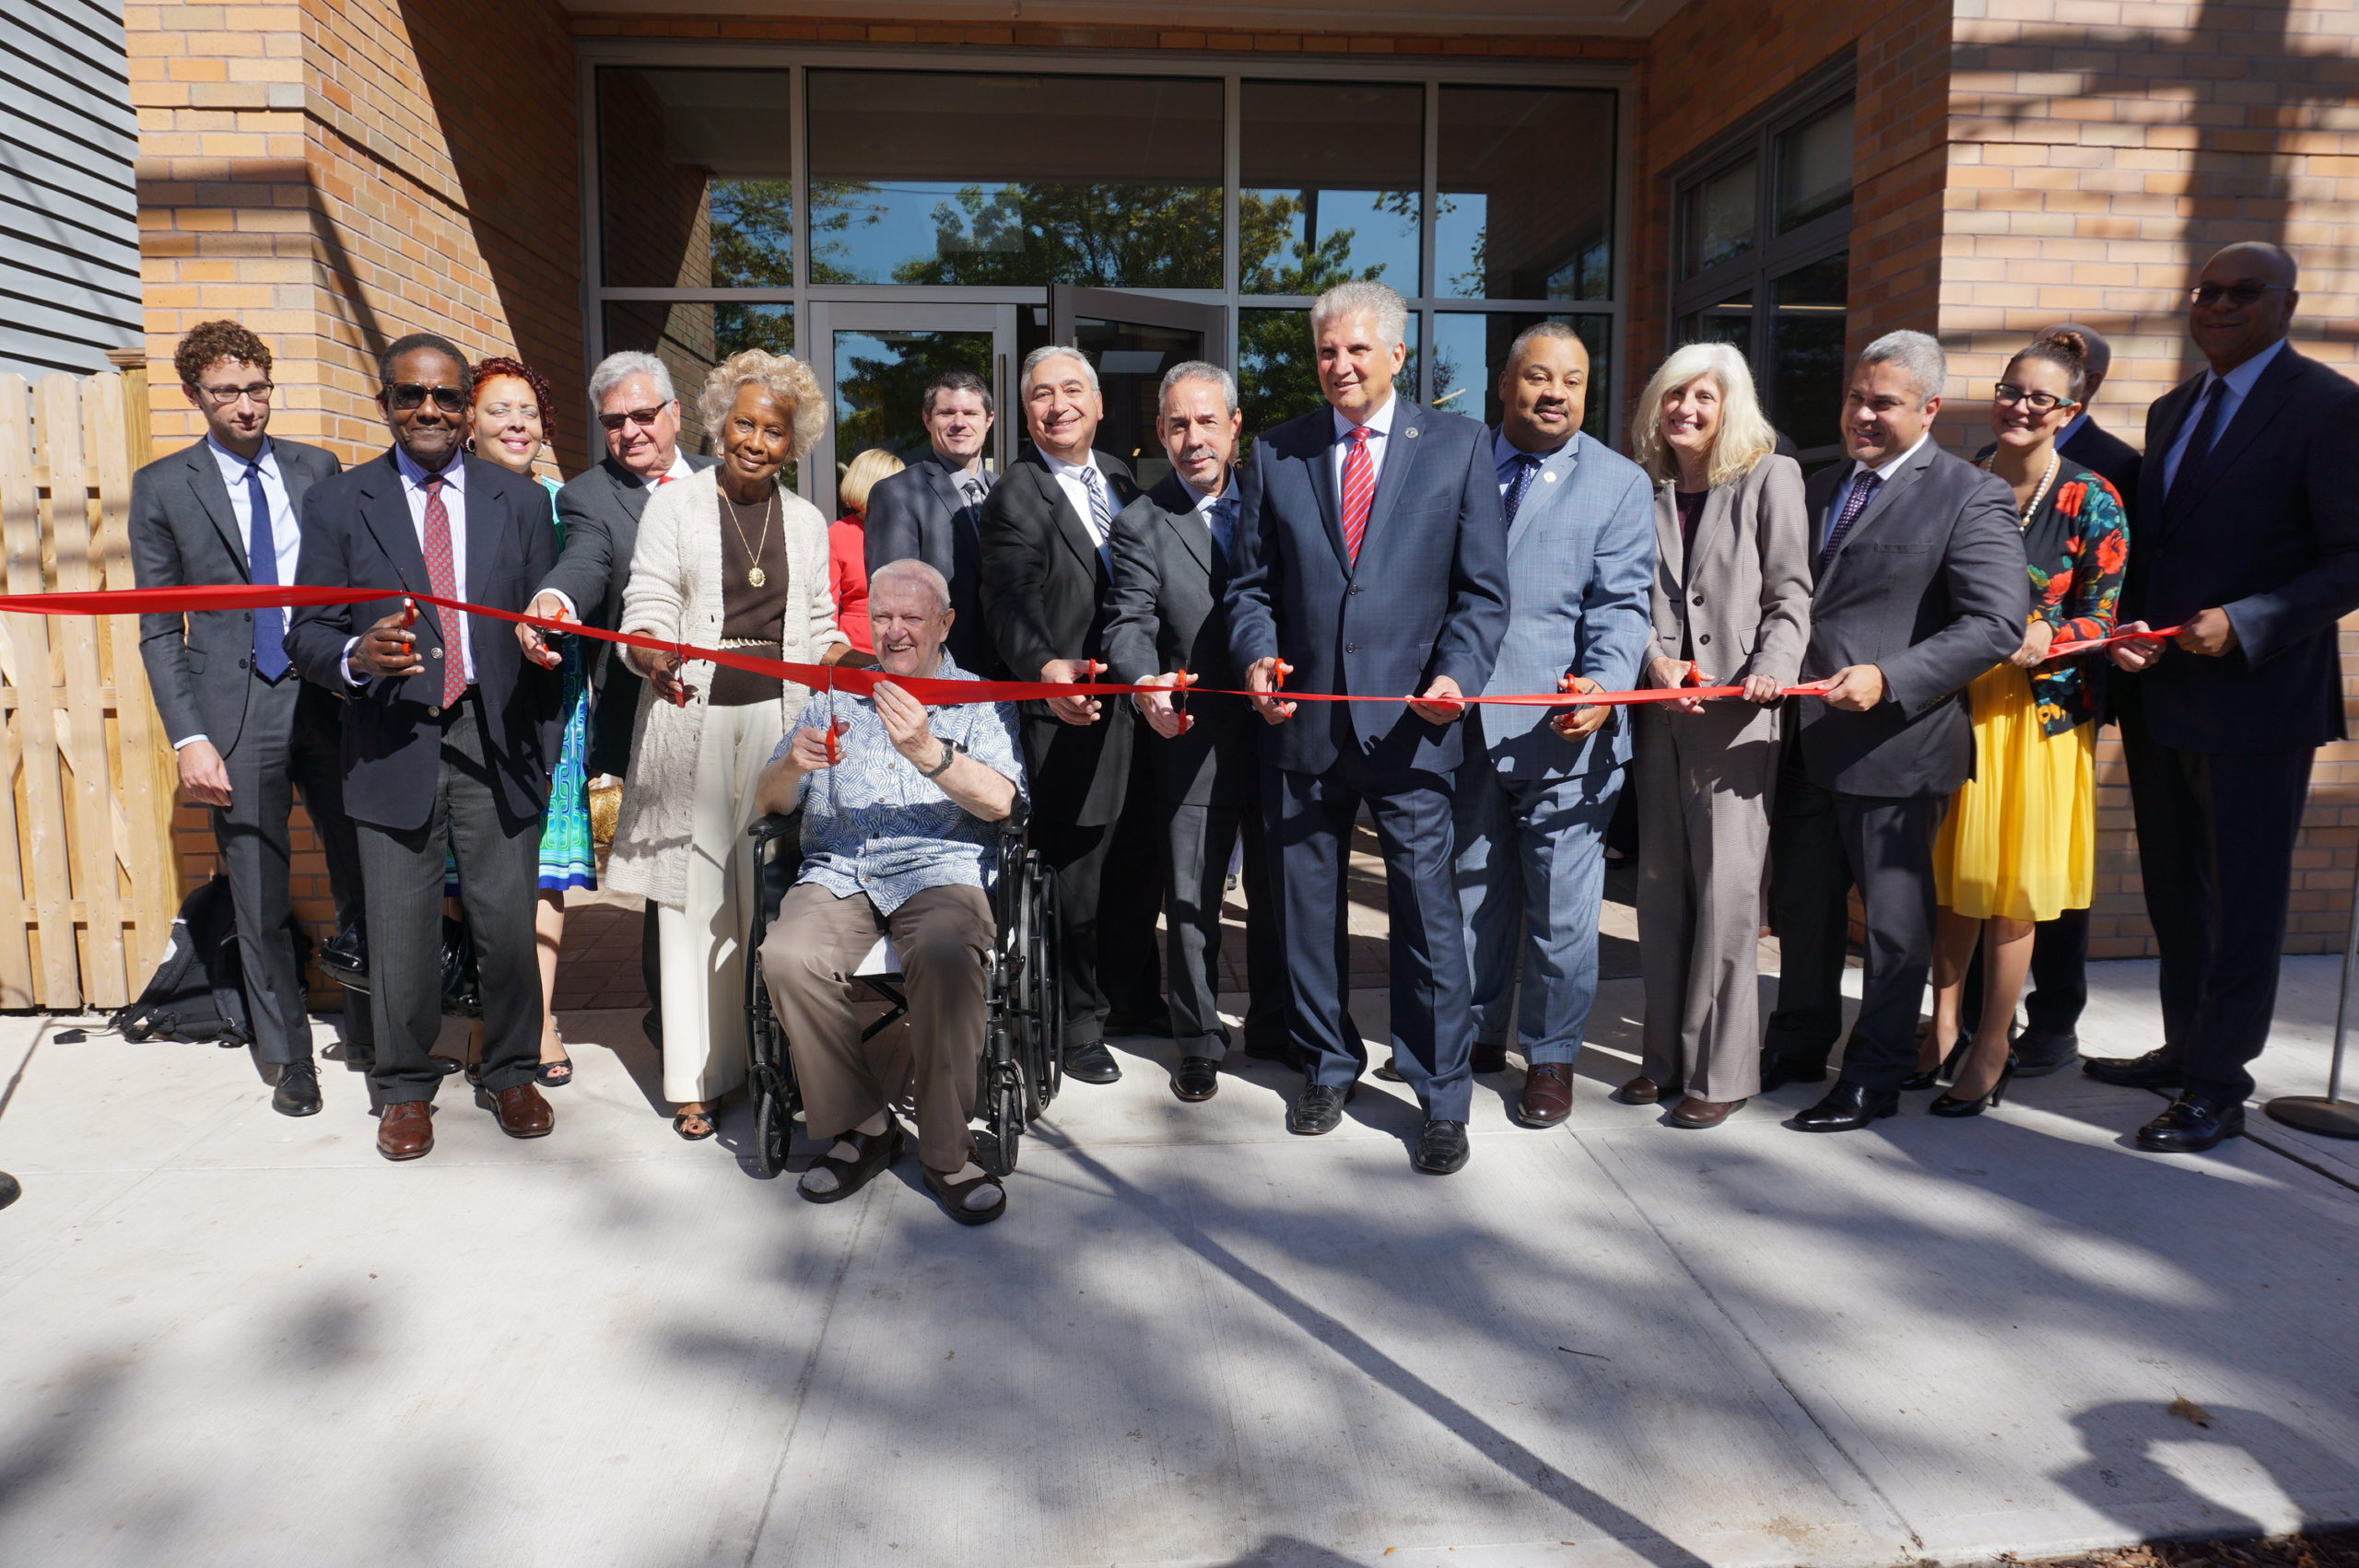 New Community Corporation Hosts Grand Opening Of Housing Facility For The Chronically Homeless